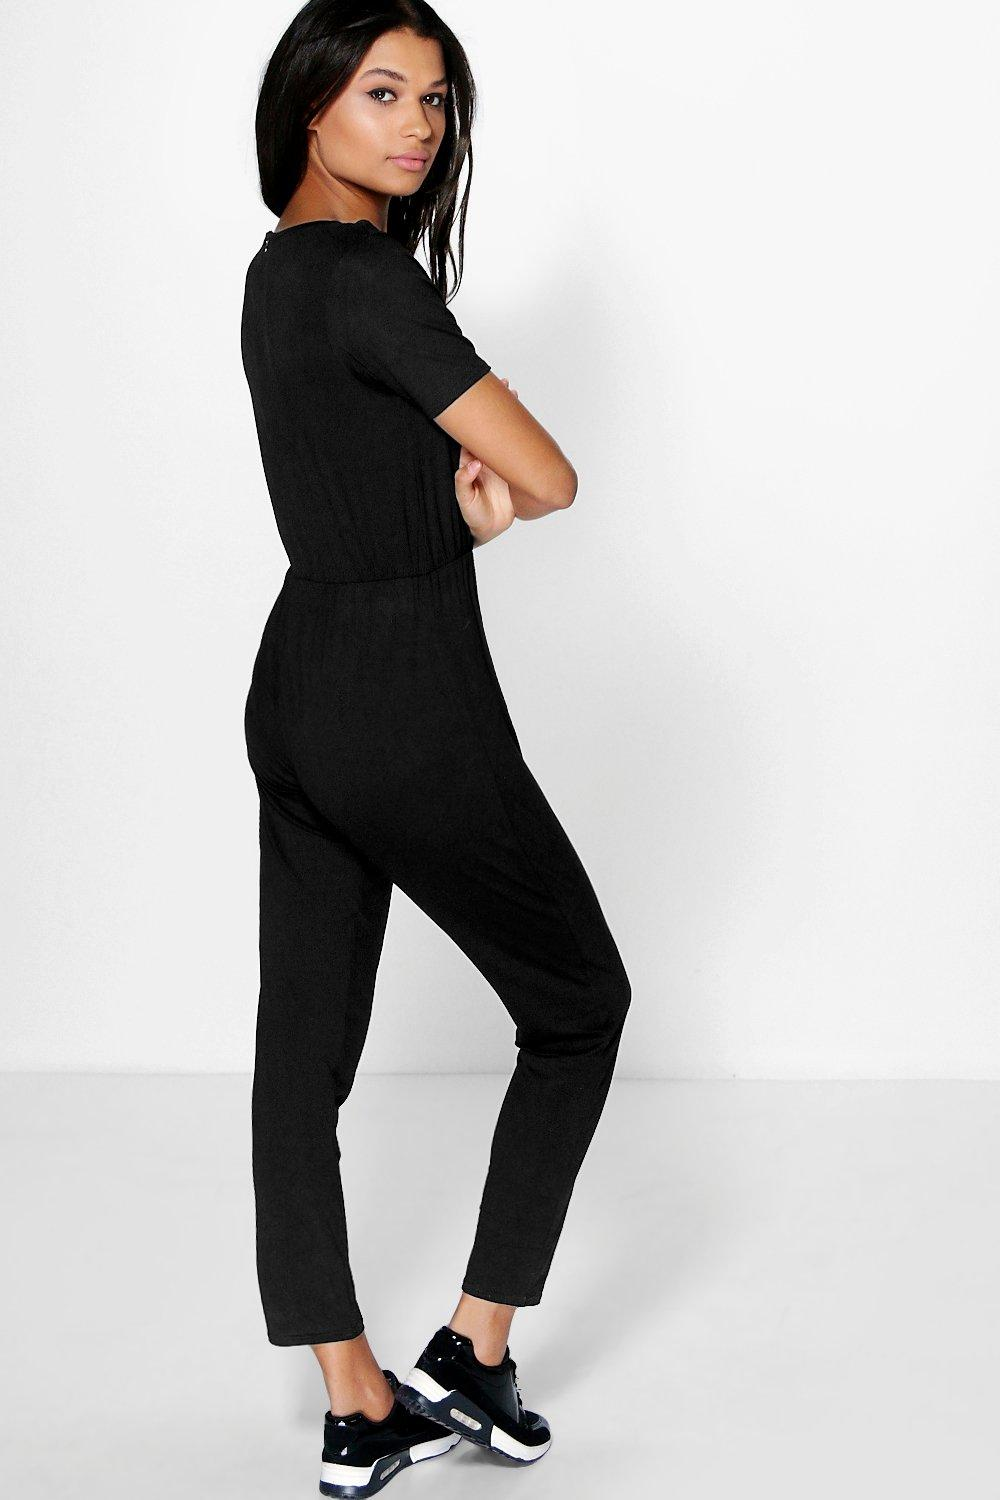 Buy Playsuits & jumpsuits from the Womens department at Debenhams. You'll find the widest range of Playsuits & jumpsuits products online and delivered to your door. they'll take you from morning to evening in colours from black to red and flattering styles from petite to plus size. Products. Filtered by: Categories; Playsuits.